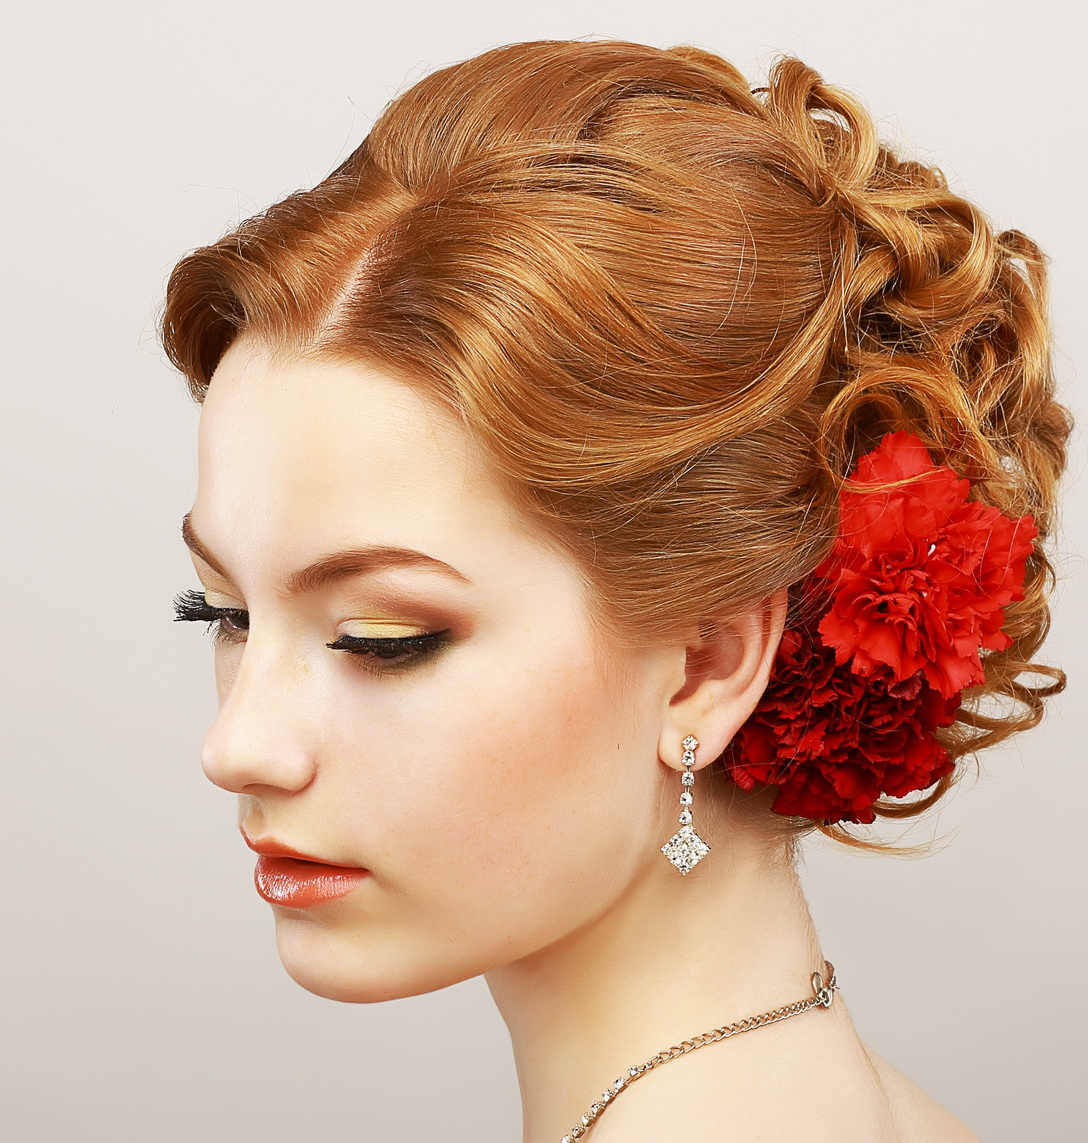 16 Easy Prom Hairstyles For Short And Medium Length Hair Regarding Cute Hairstyles For Short Hair For Homecoming (View 15 of 25)